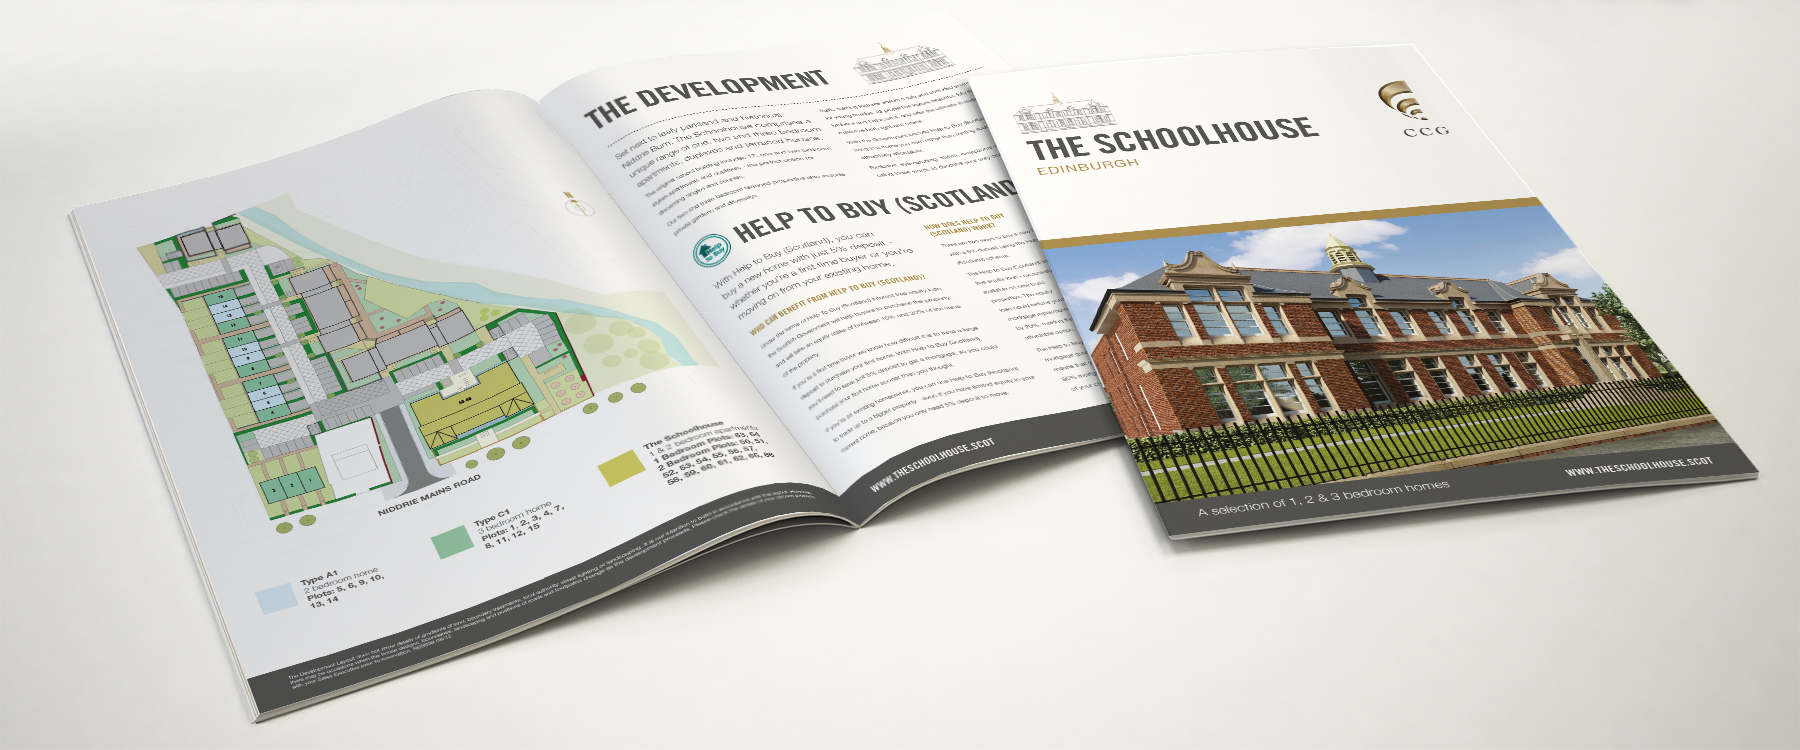 reflexblue-CCG-The-Schoolhouse-Brochure-Mockup